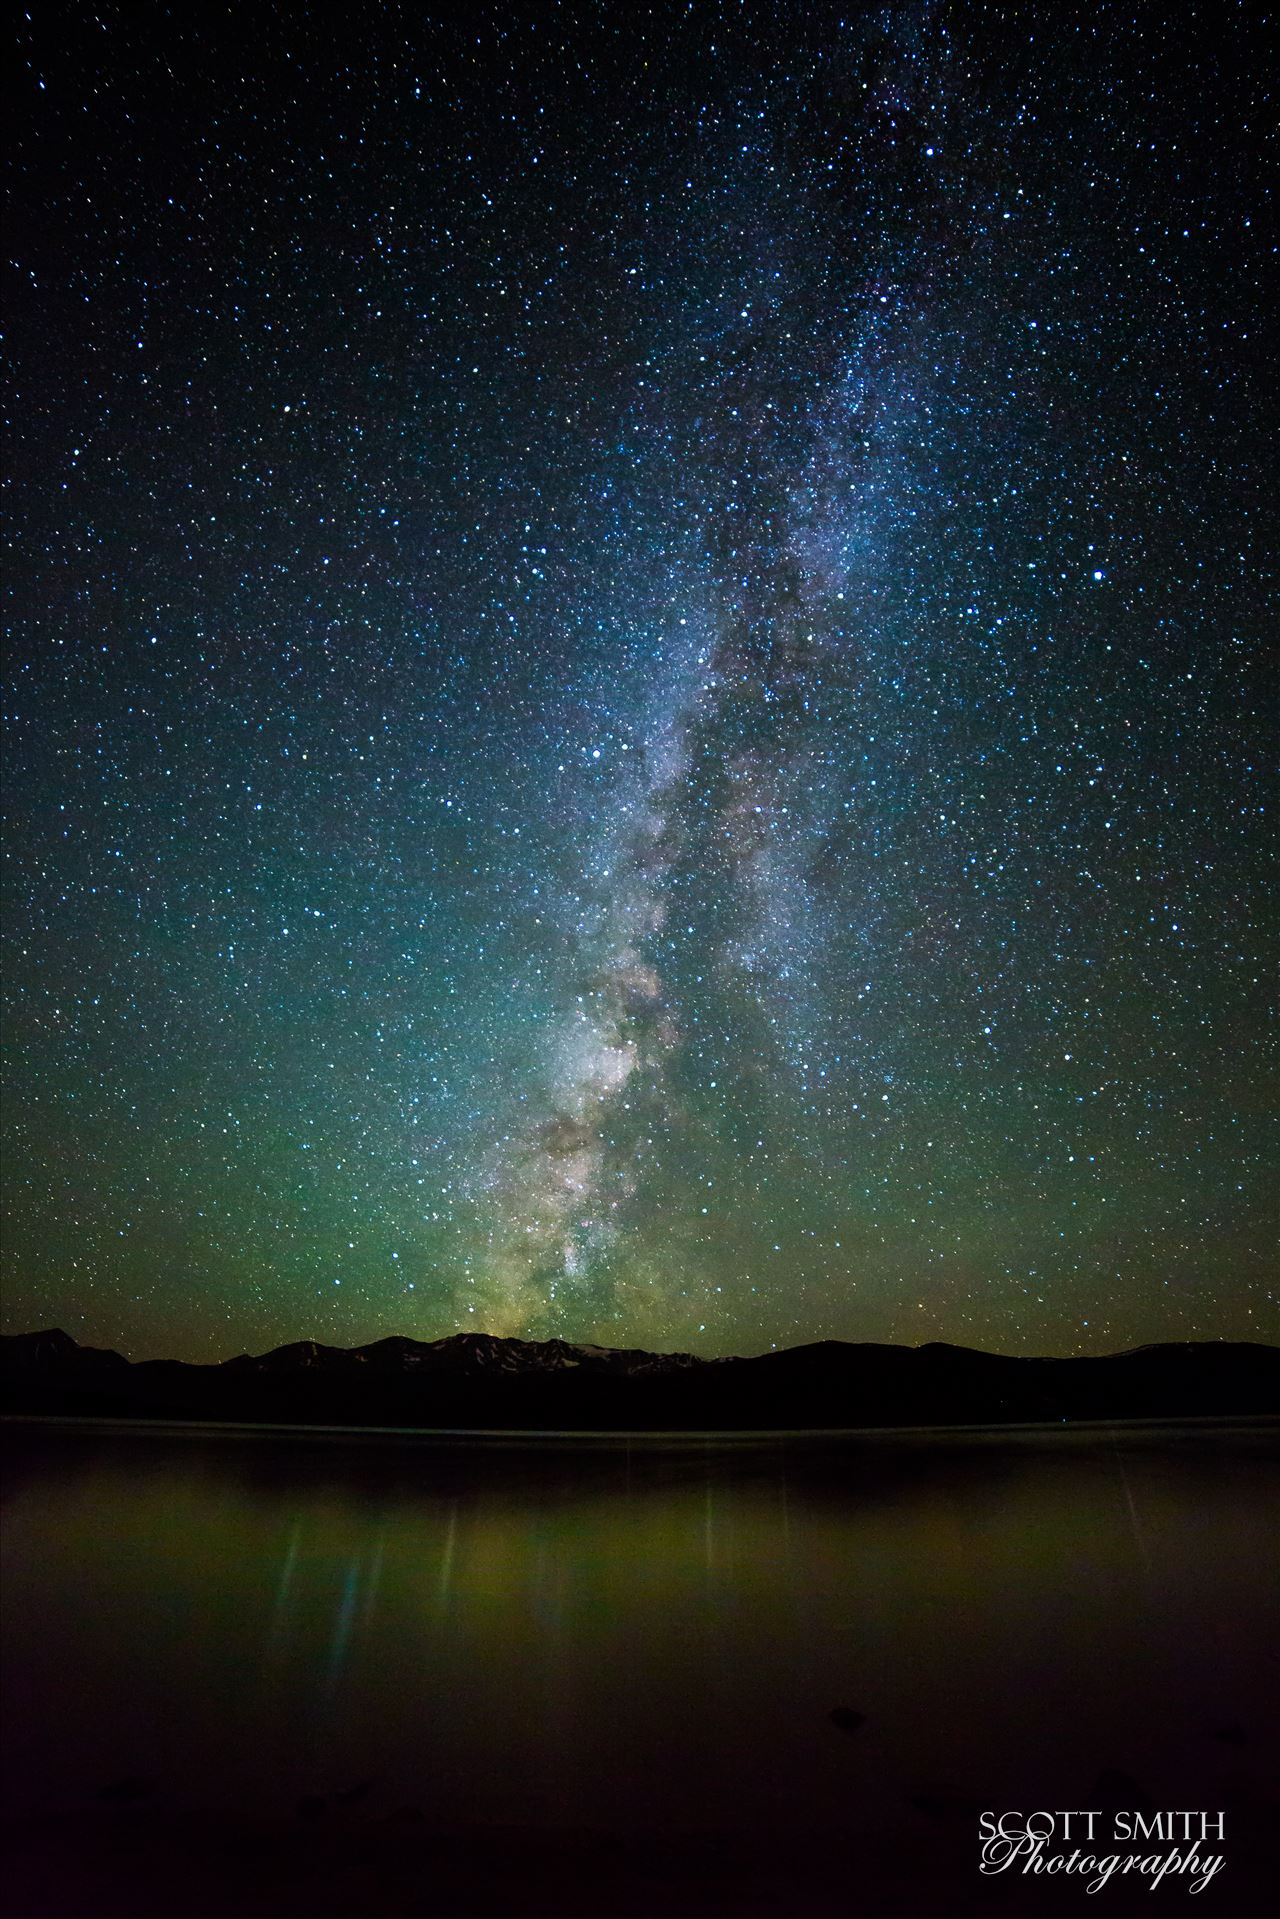 Milky Way at Turquoise Lake25 second exposure of the Milky Way from Turqouise Lake, Leadville Colorado.